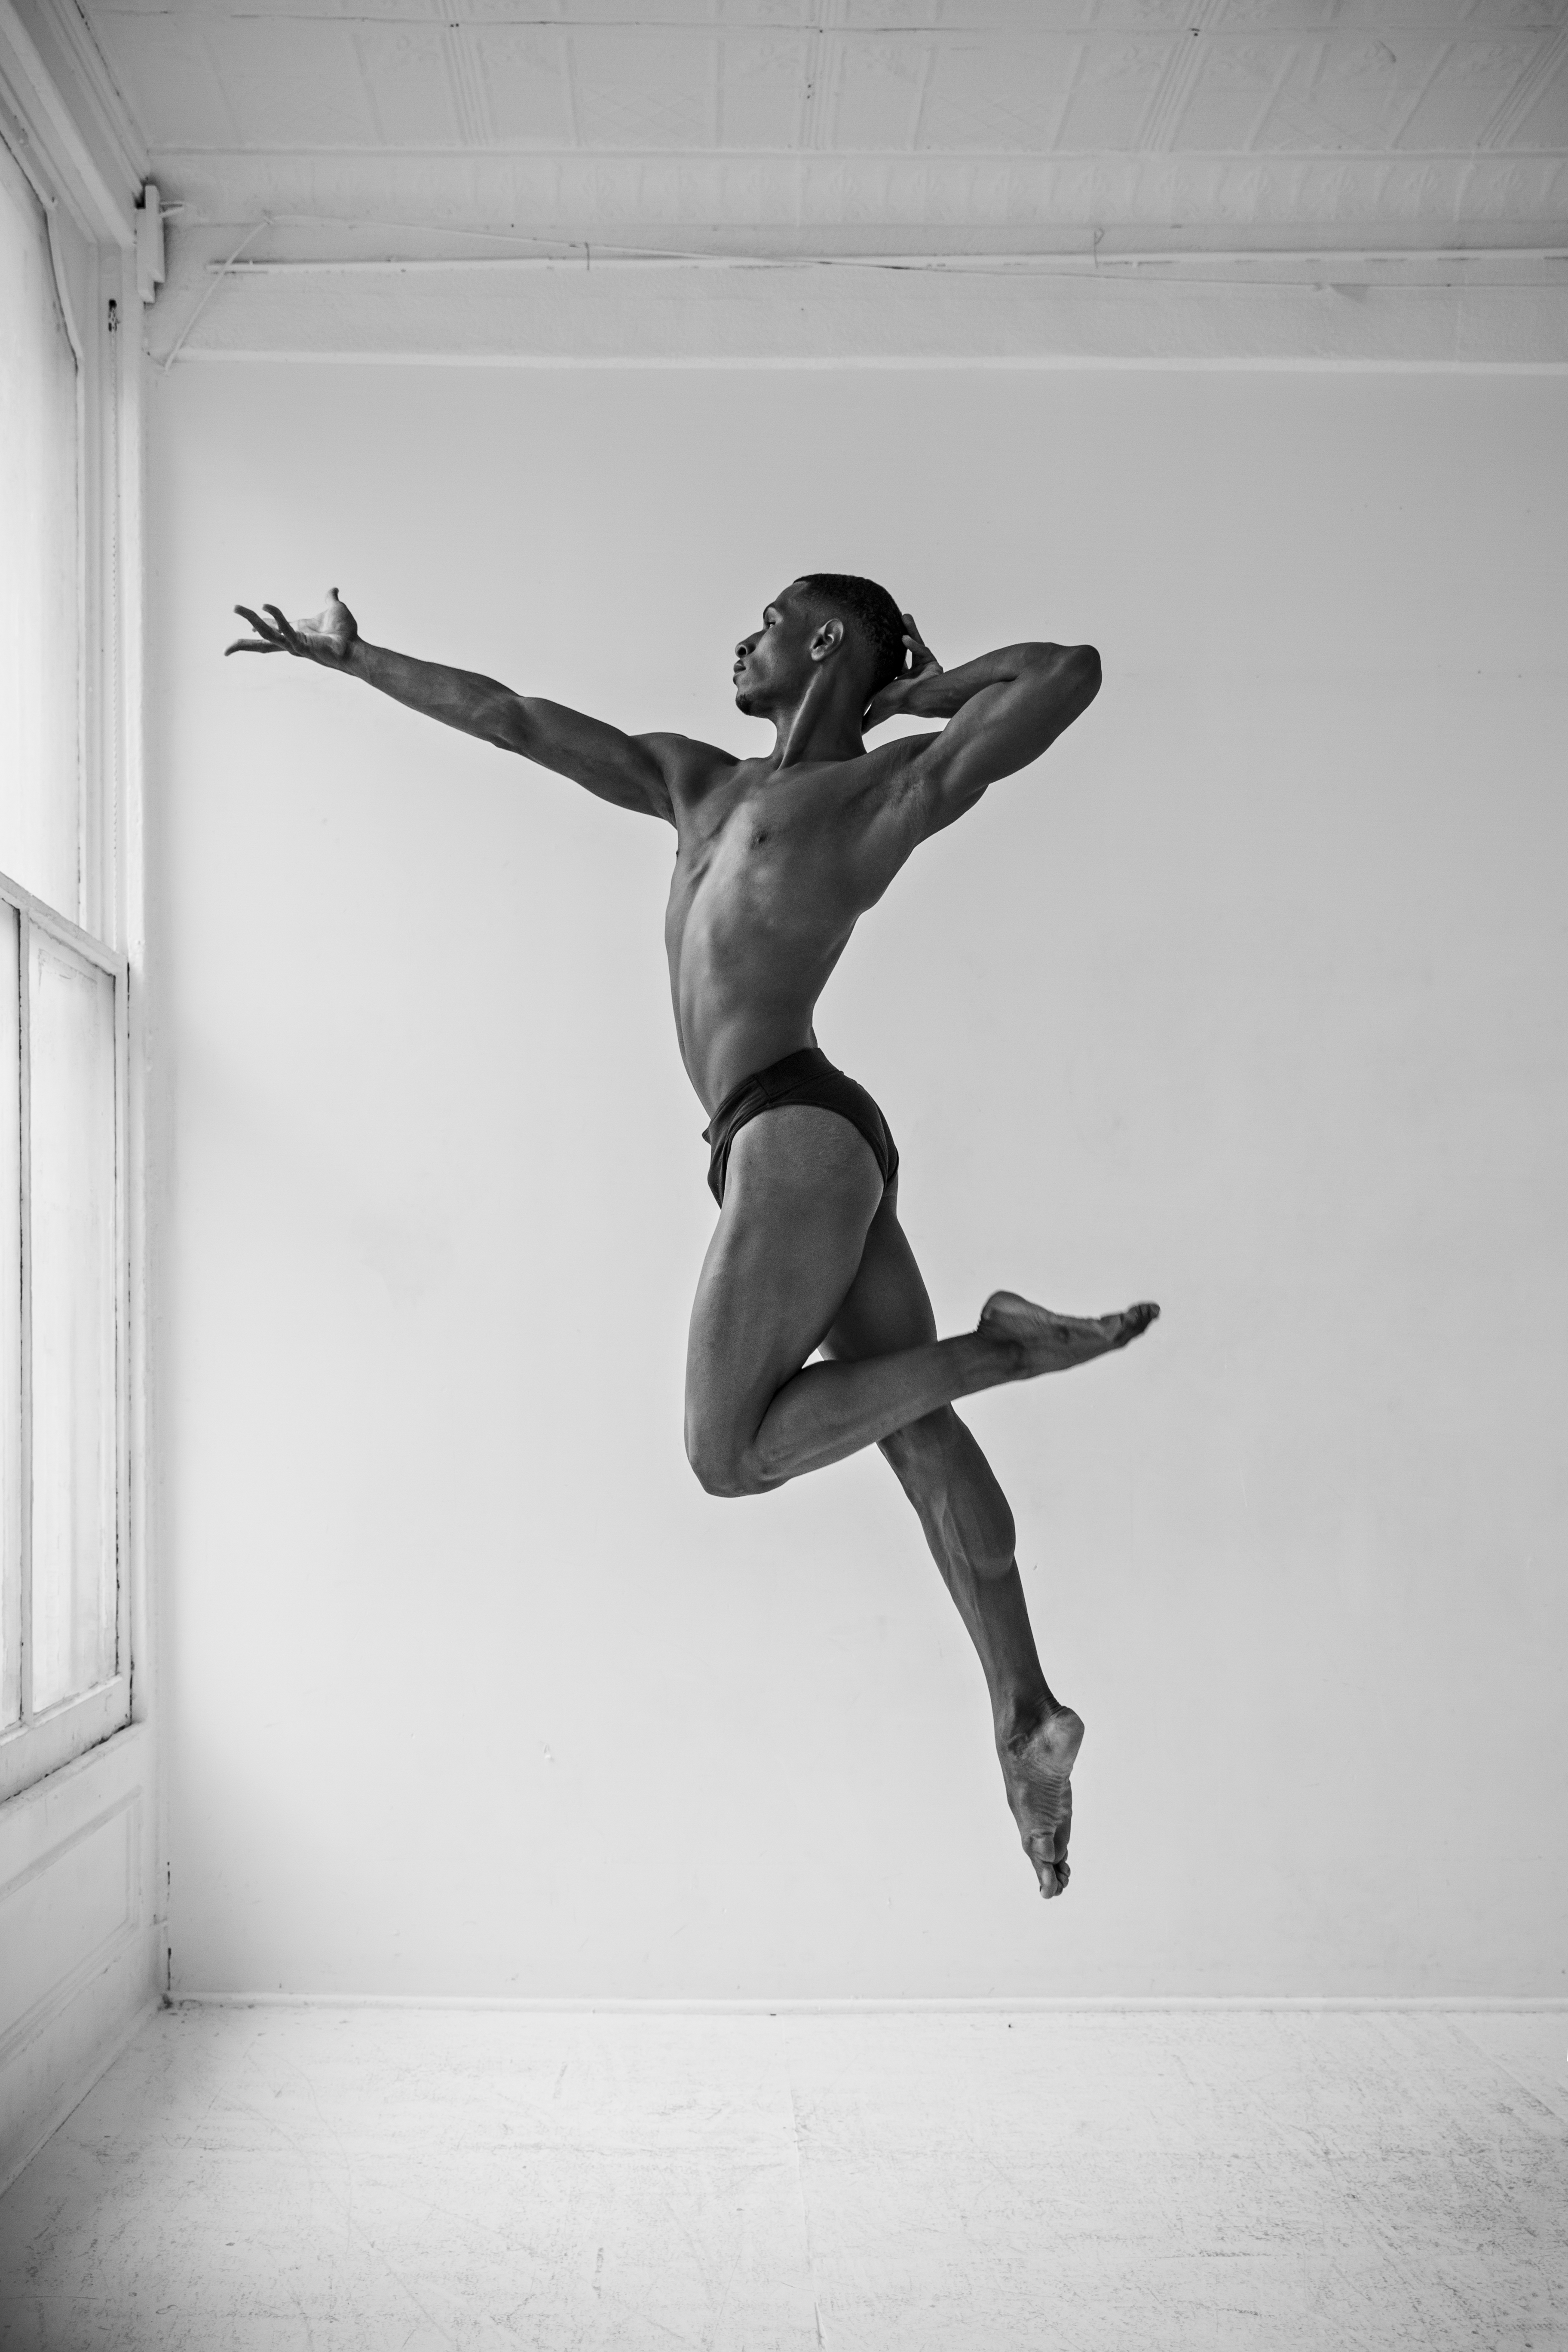 Dancer Zion jumping